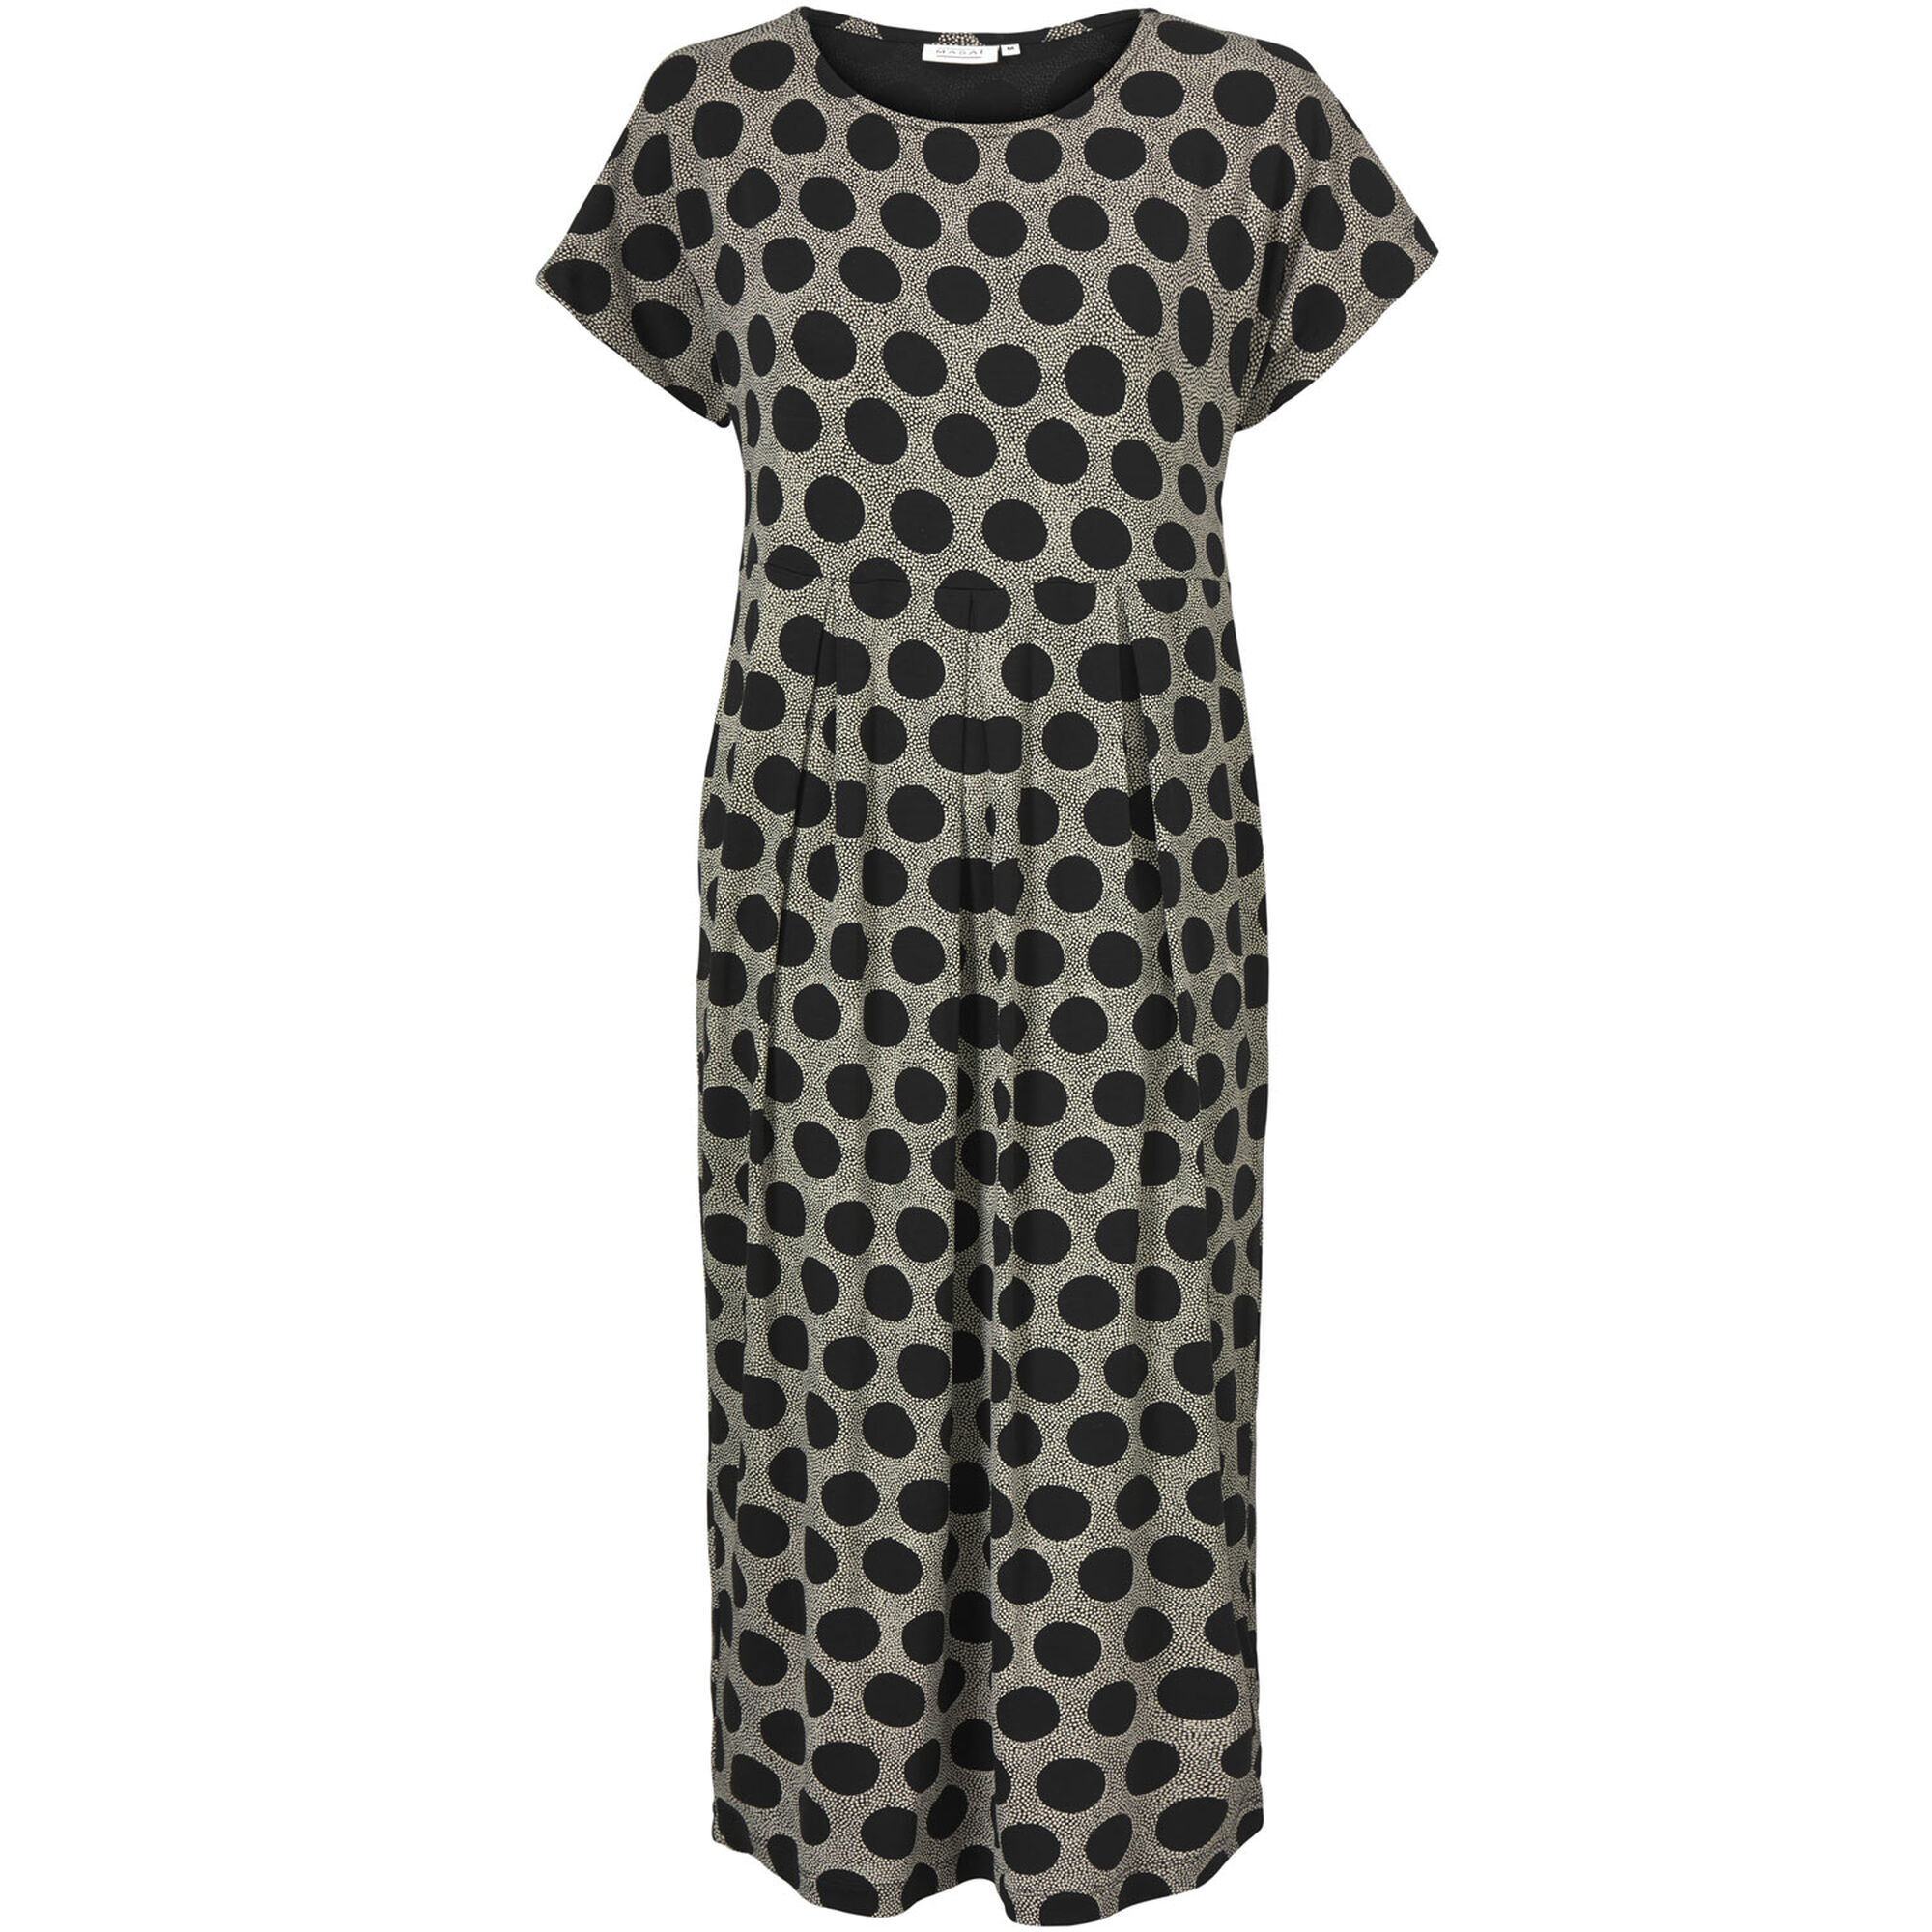 OLNIA DRESS, Black, hi-res